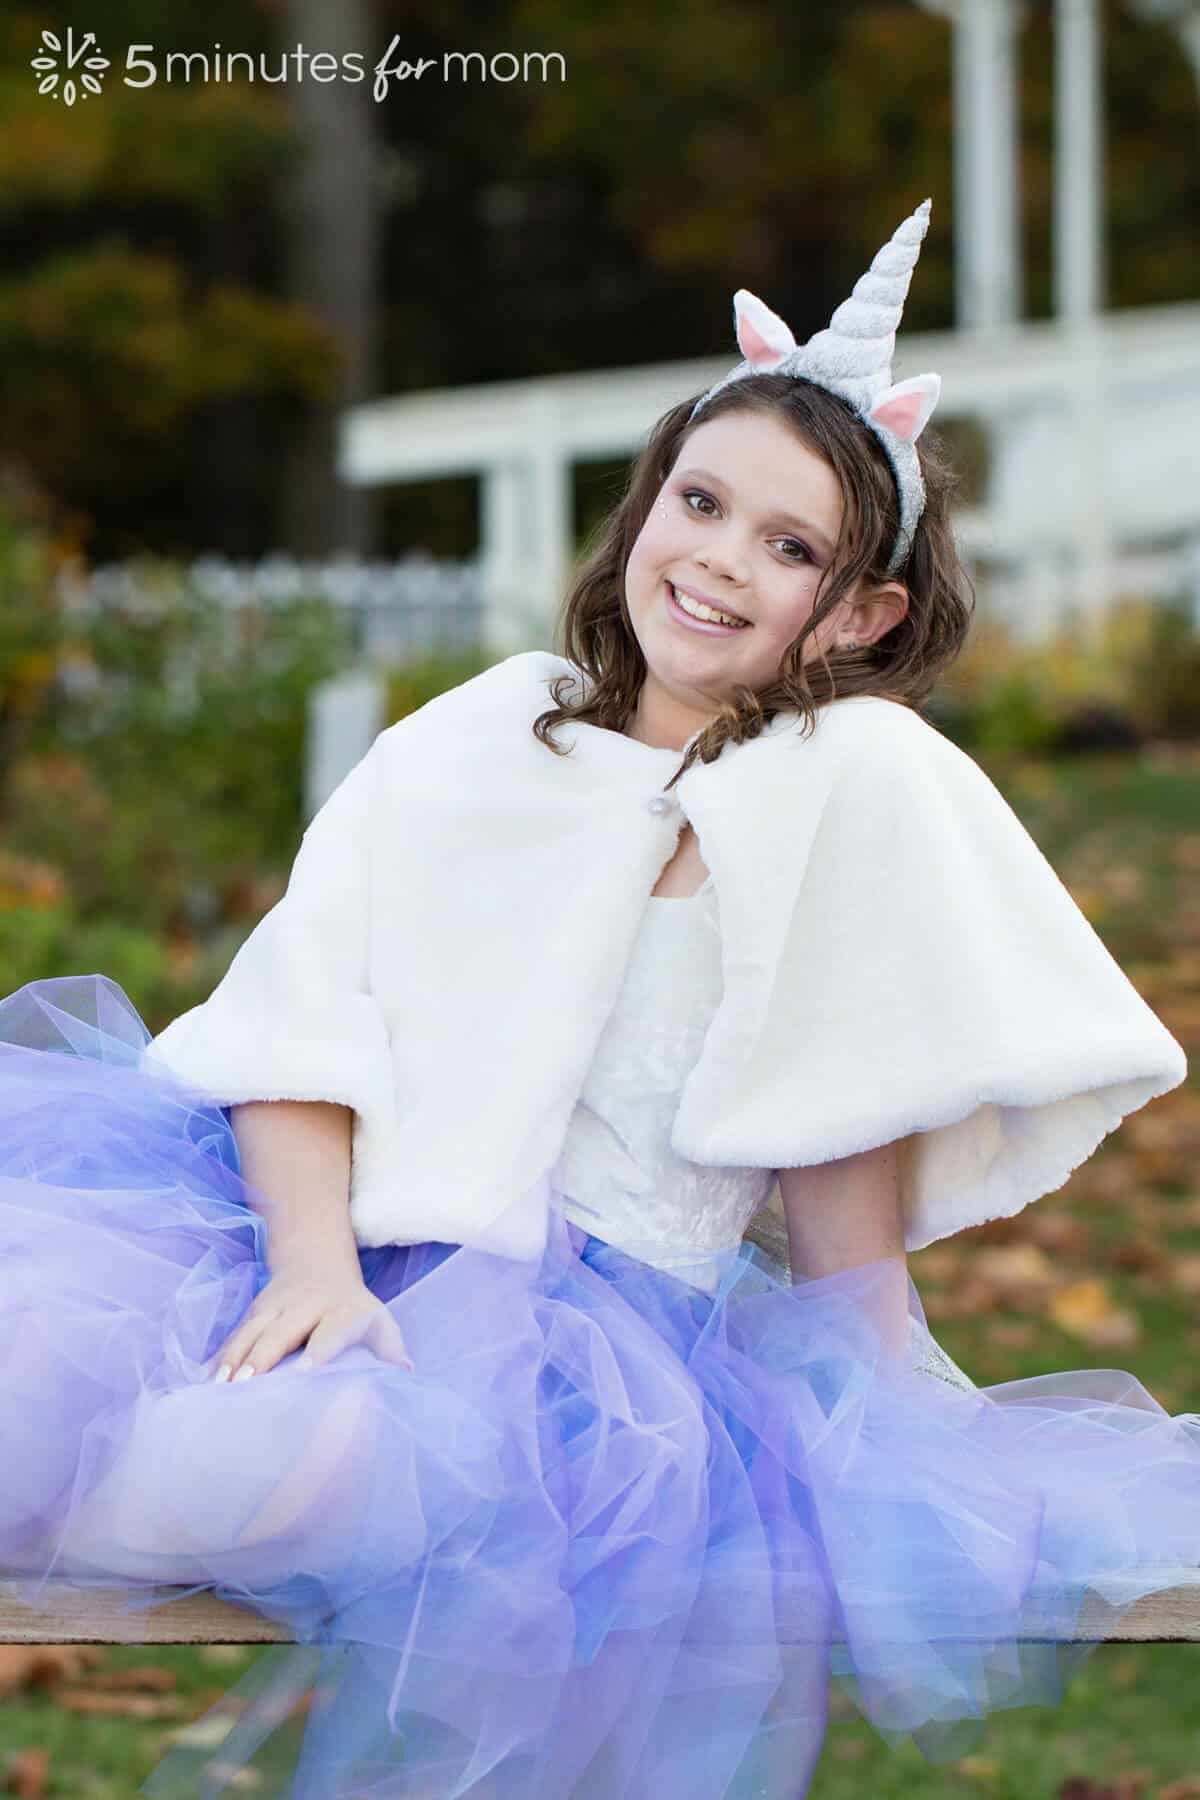 Faux fur capelet for unicorn costume - how to sew capelet tutorial